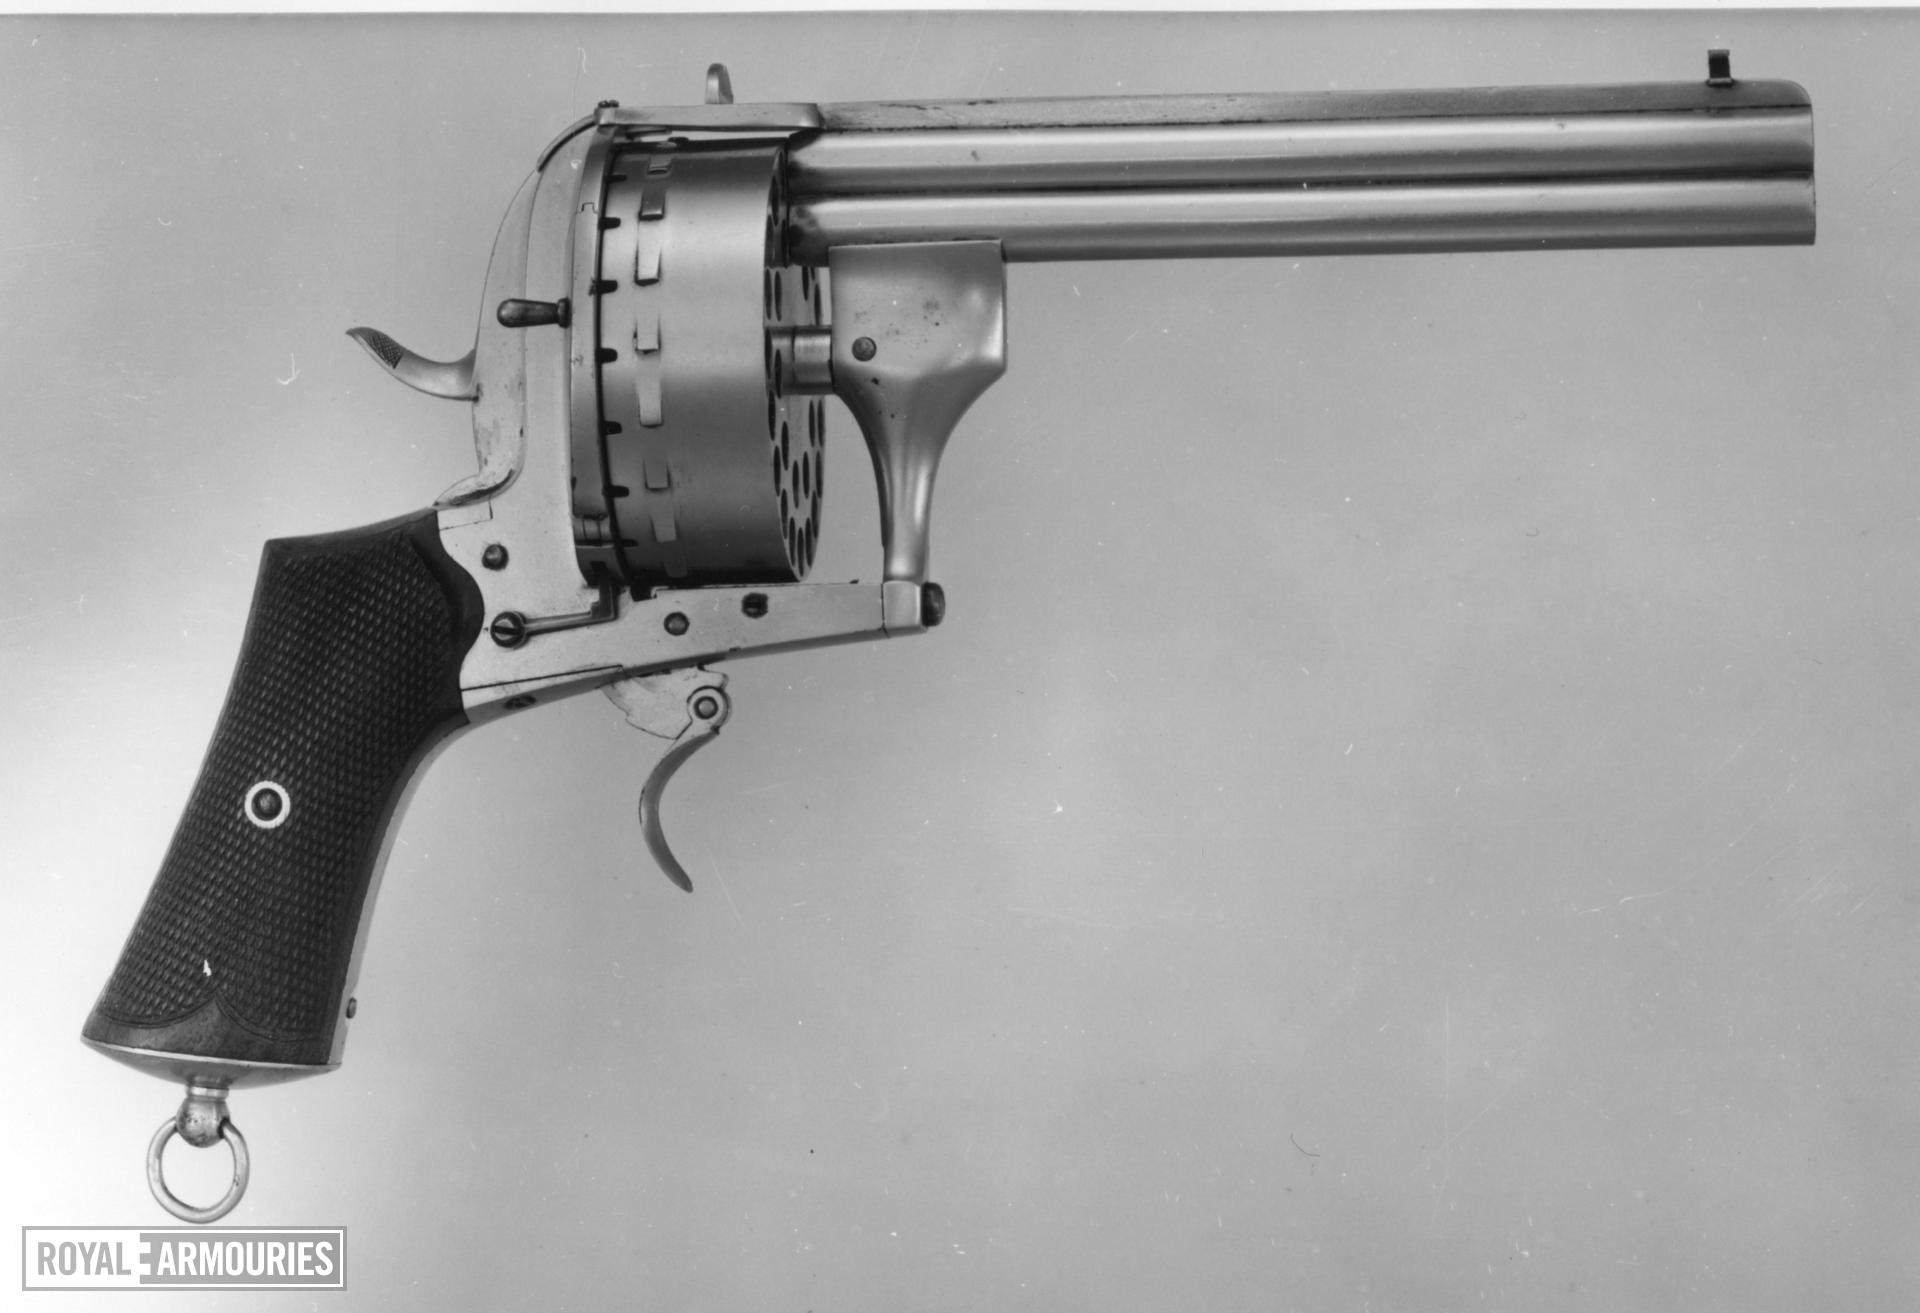 Pinfire thirty-shot double-barrelled revolver - Lefeuchaux type